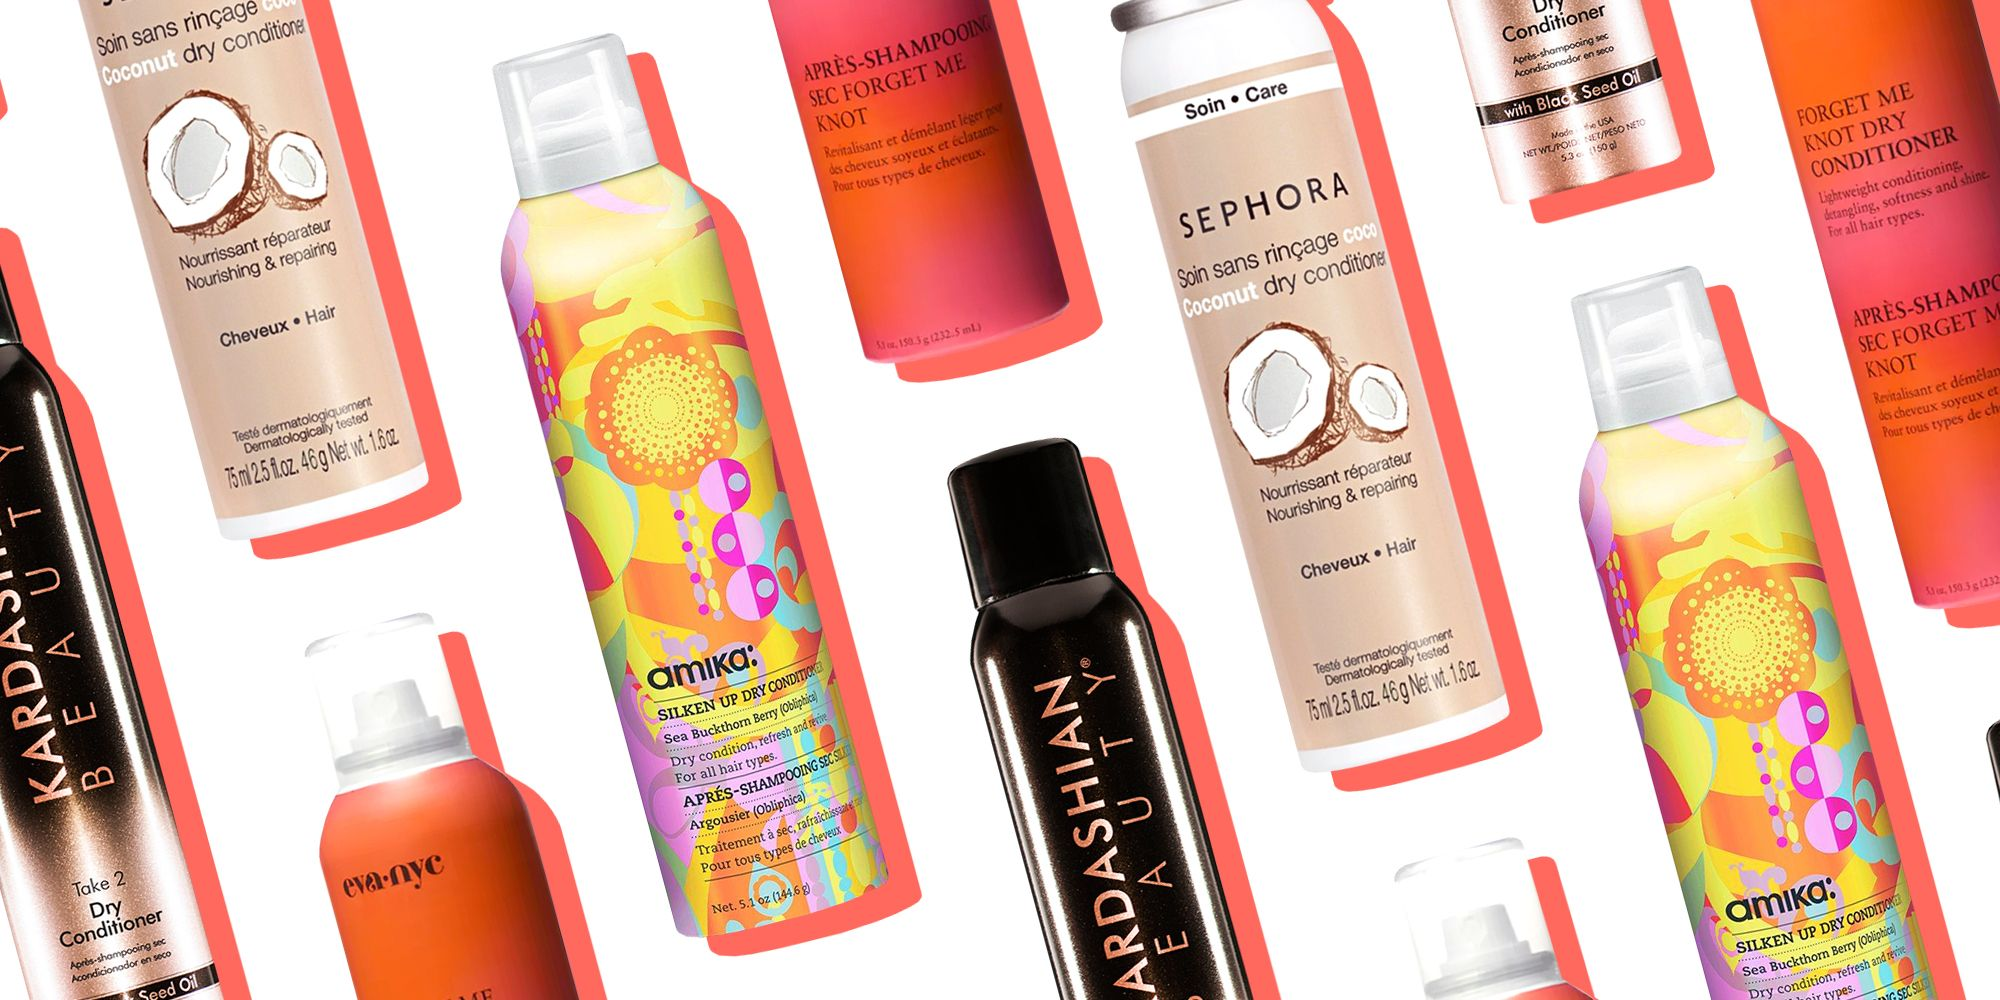 What Is Dry Conditioner - 10 Best Dry Conditioners to Use in